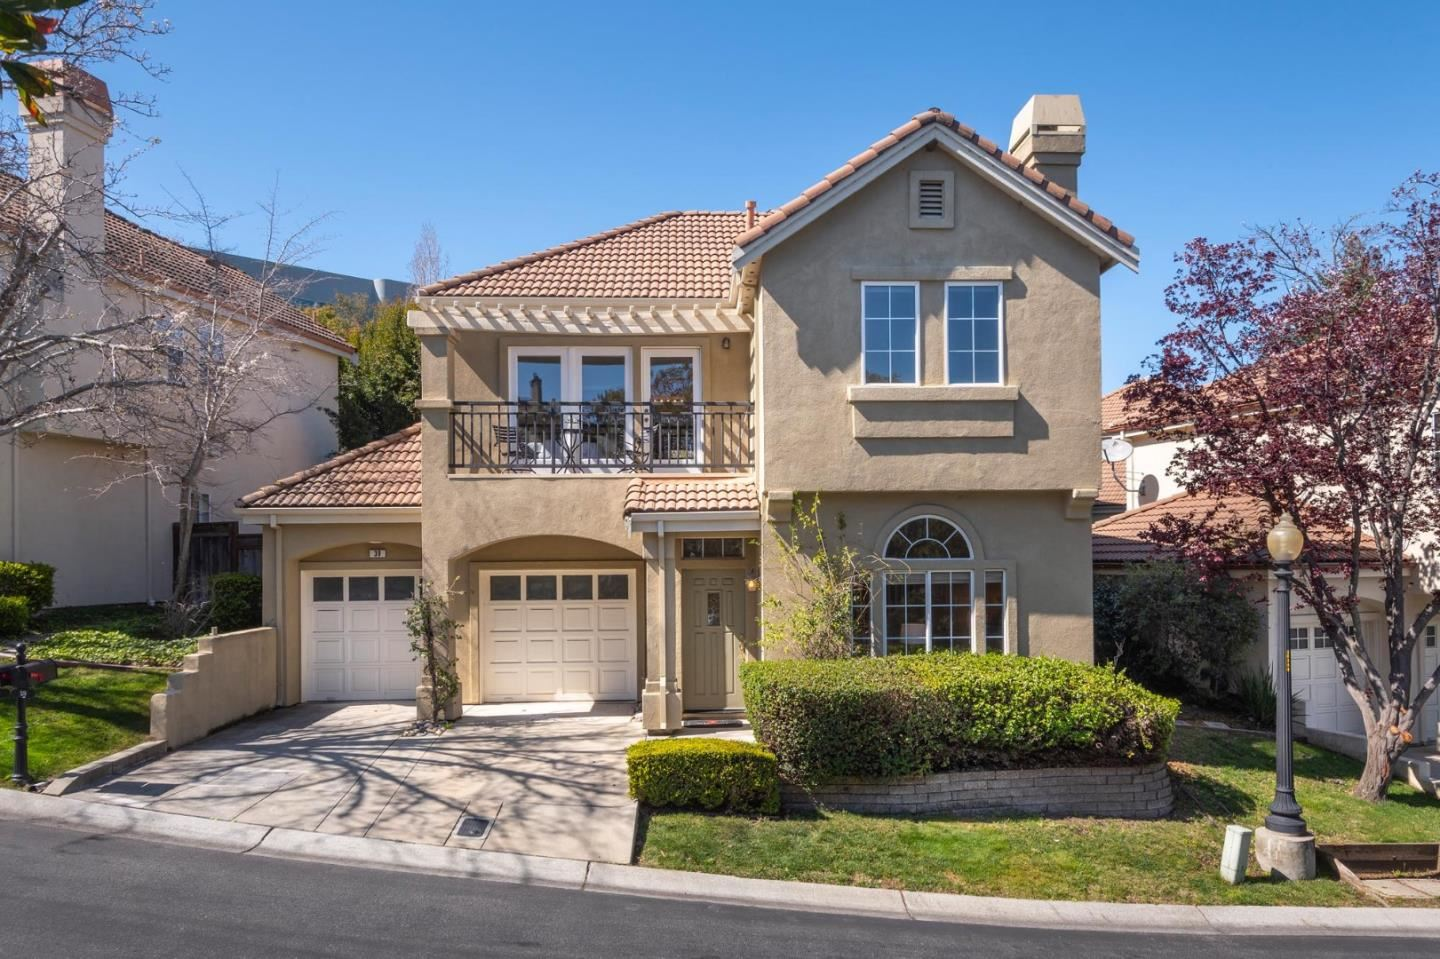 Photo for 39 Arroyo View CIR, BELMONT, CA 94002 (MLS # ML81833967)